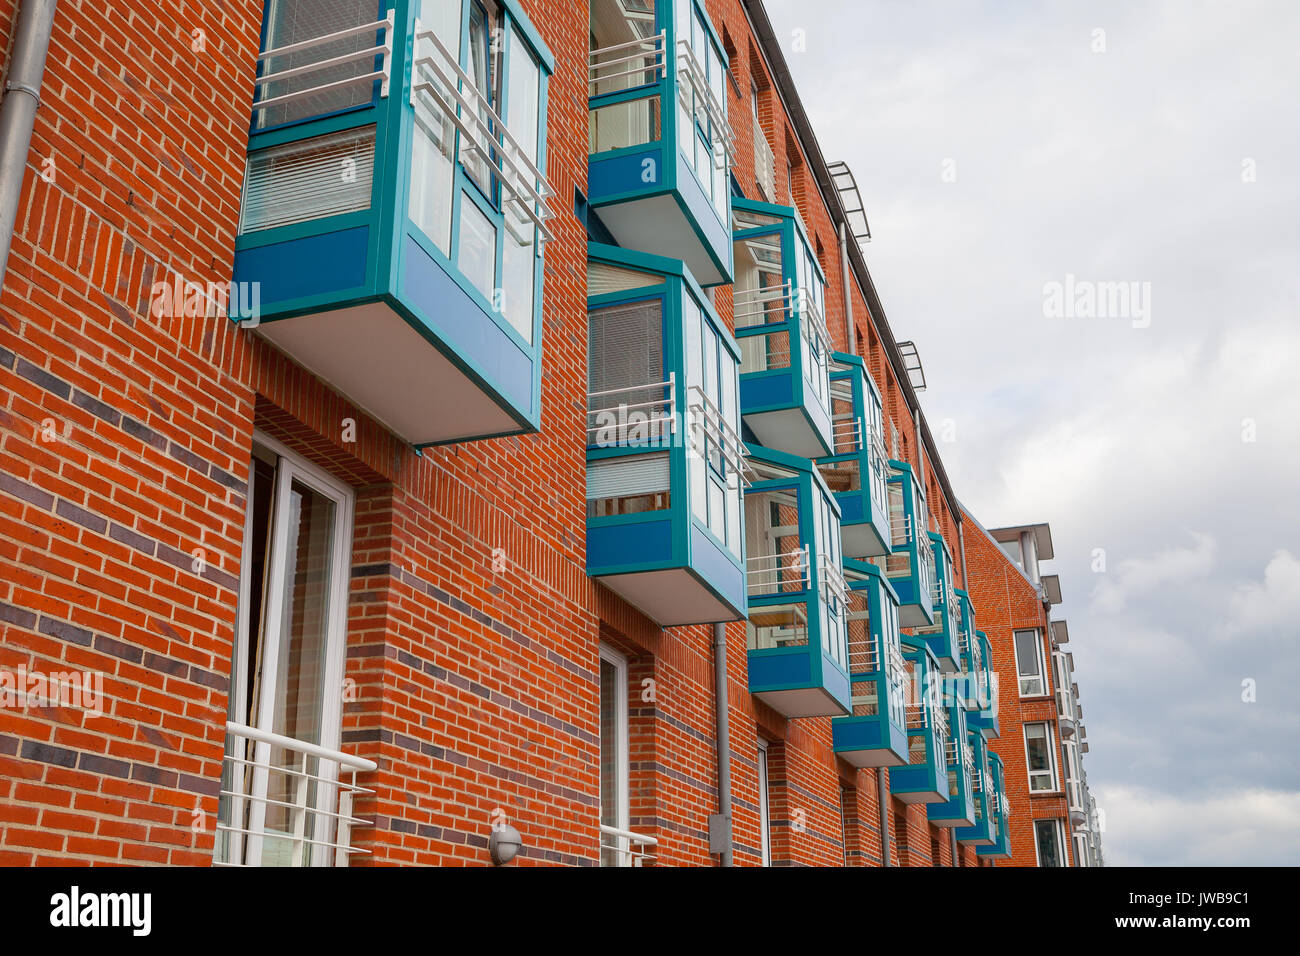 Fragment of new brick building wall with windows and blue balconies. Modern apartment house. - Stock Image